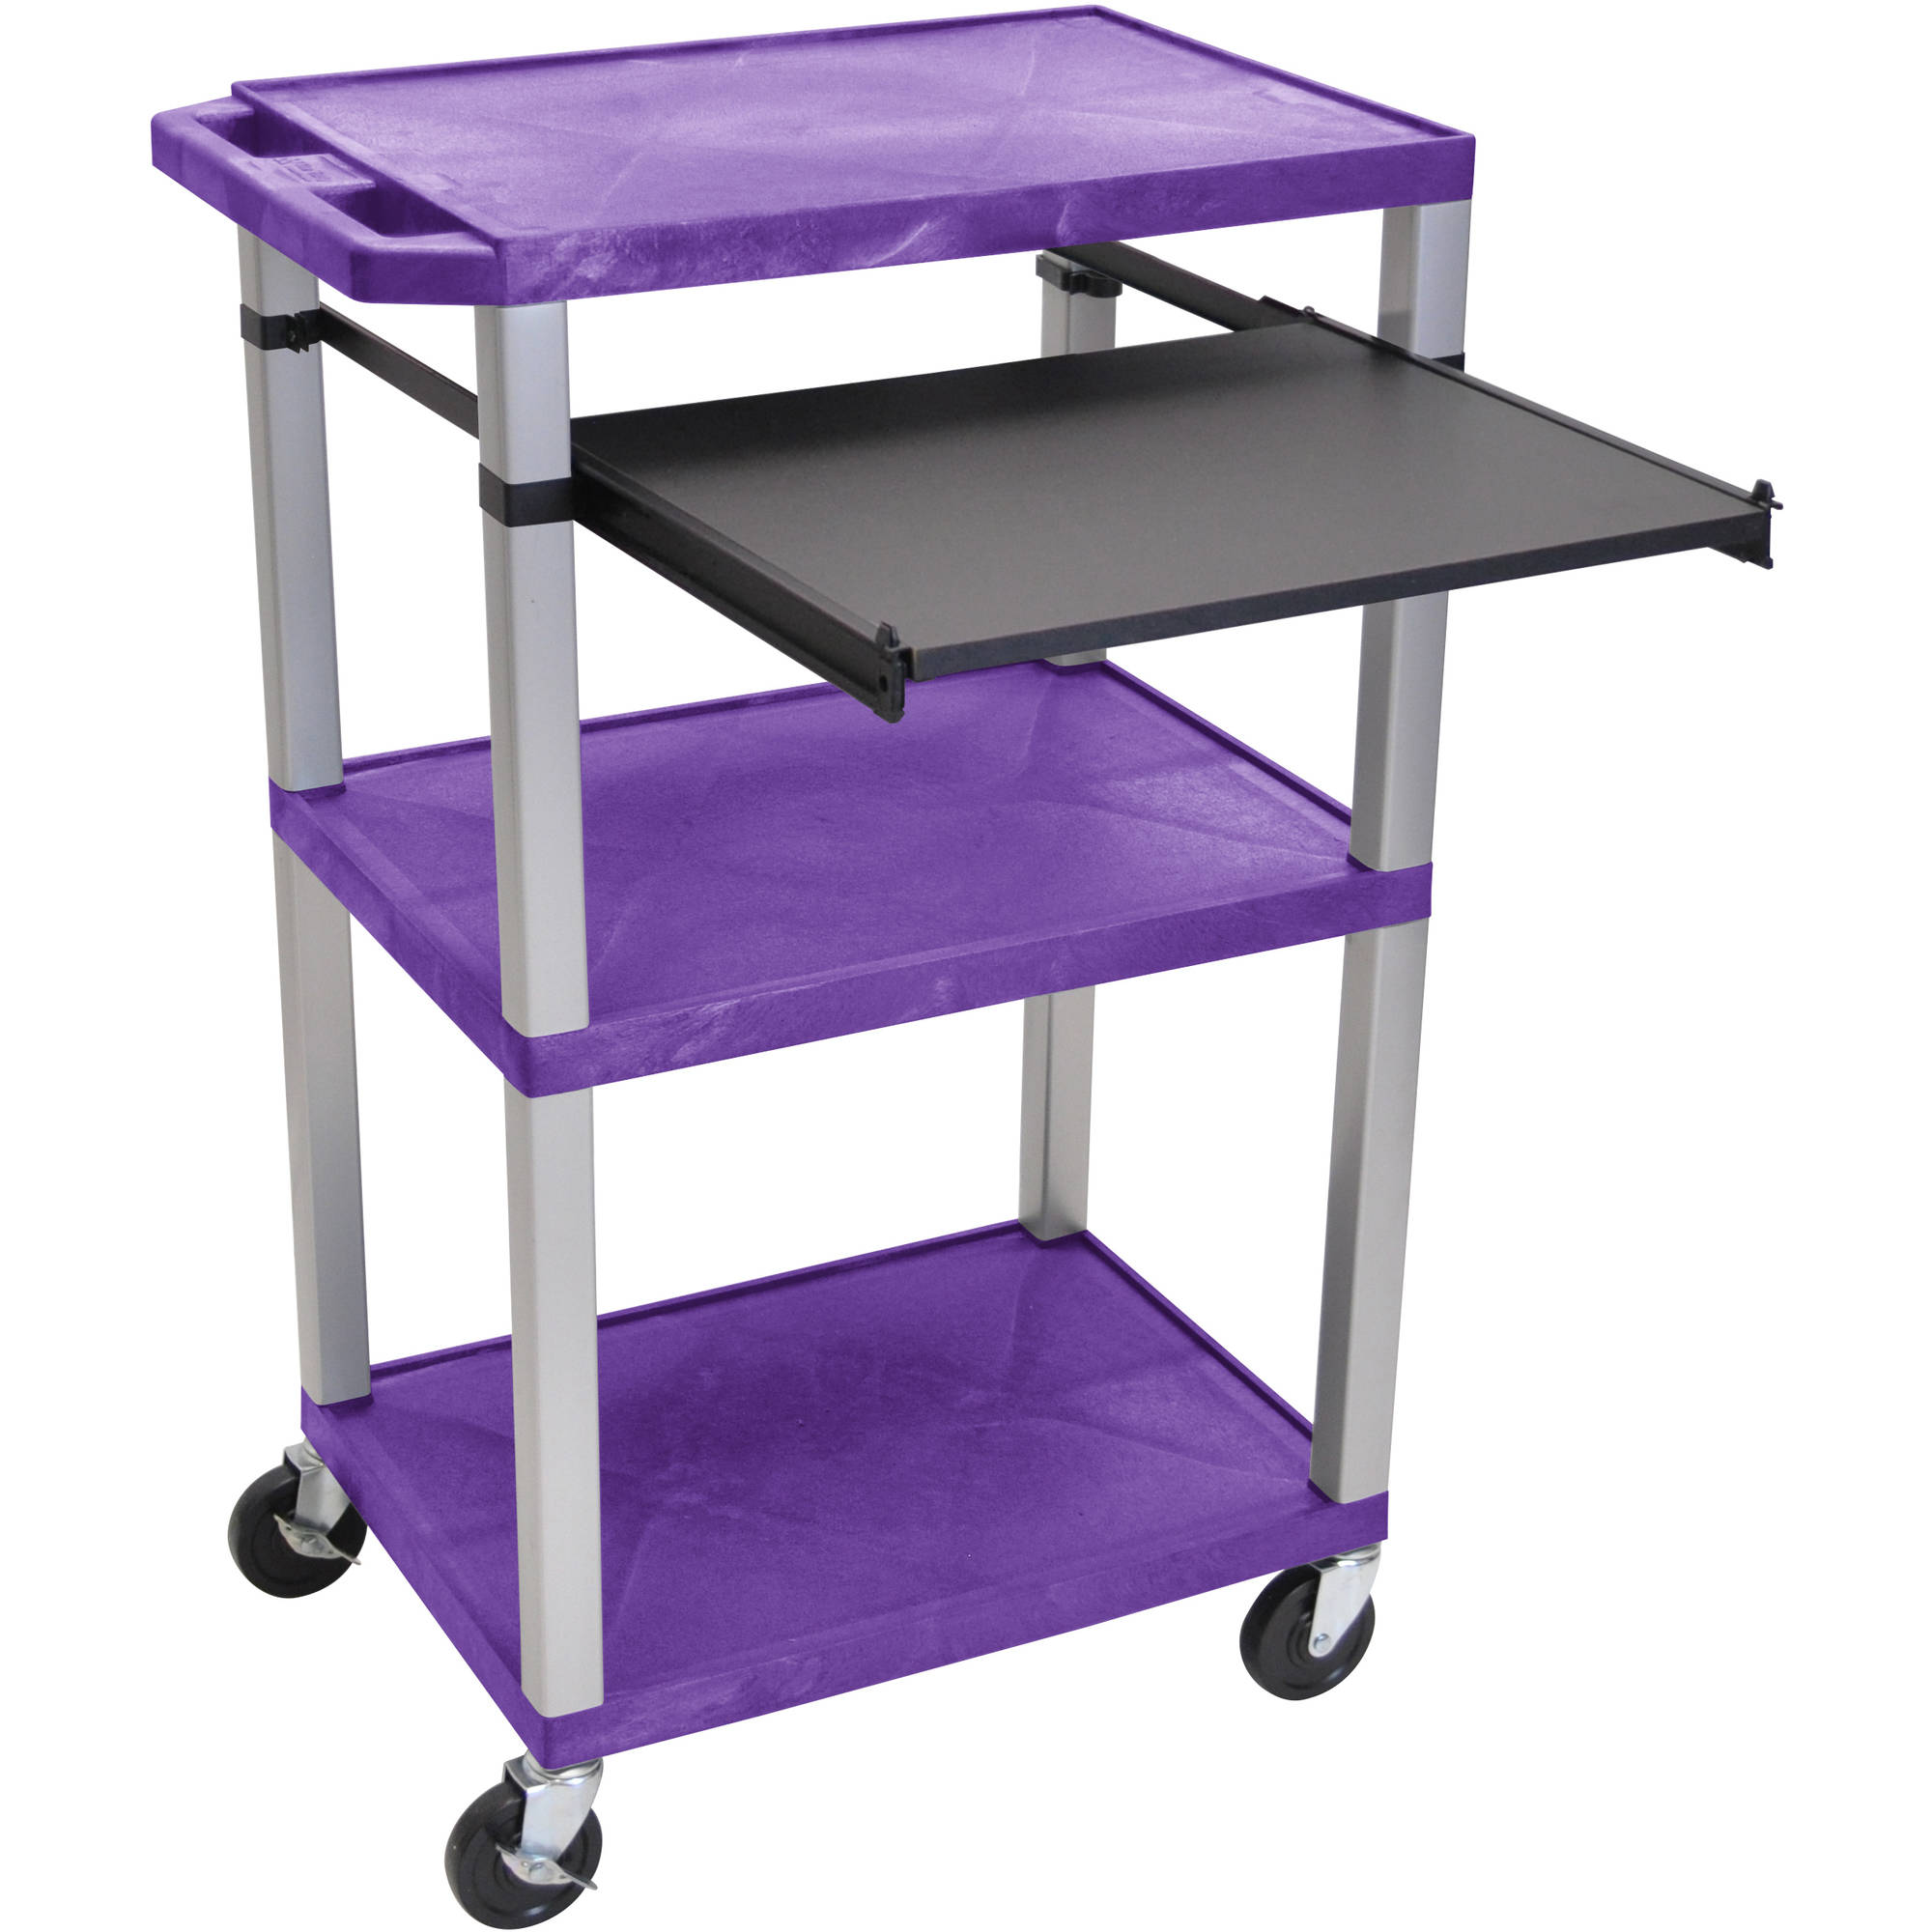 H. Wilson Tuffy 3-Shelf A/V Cart with Electric, Black Front Pullout Shelf, Purple Shelves and Nickel Legs